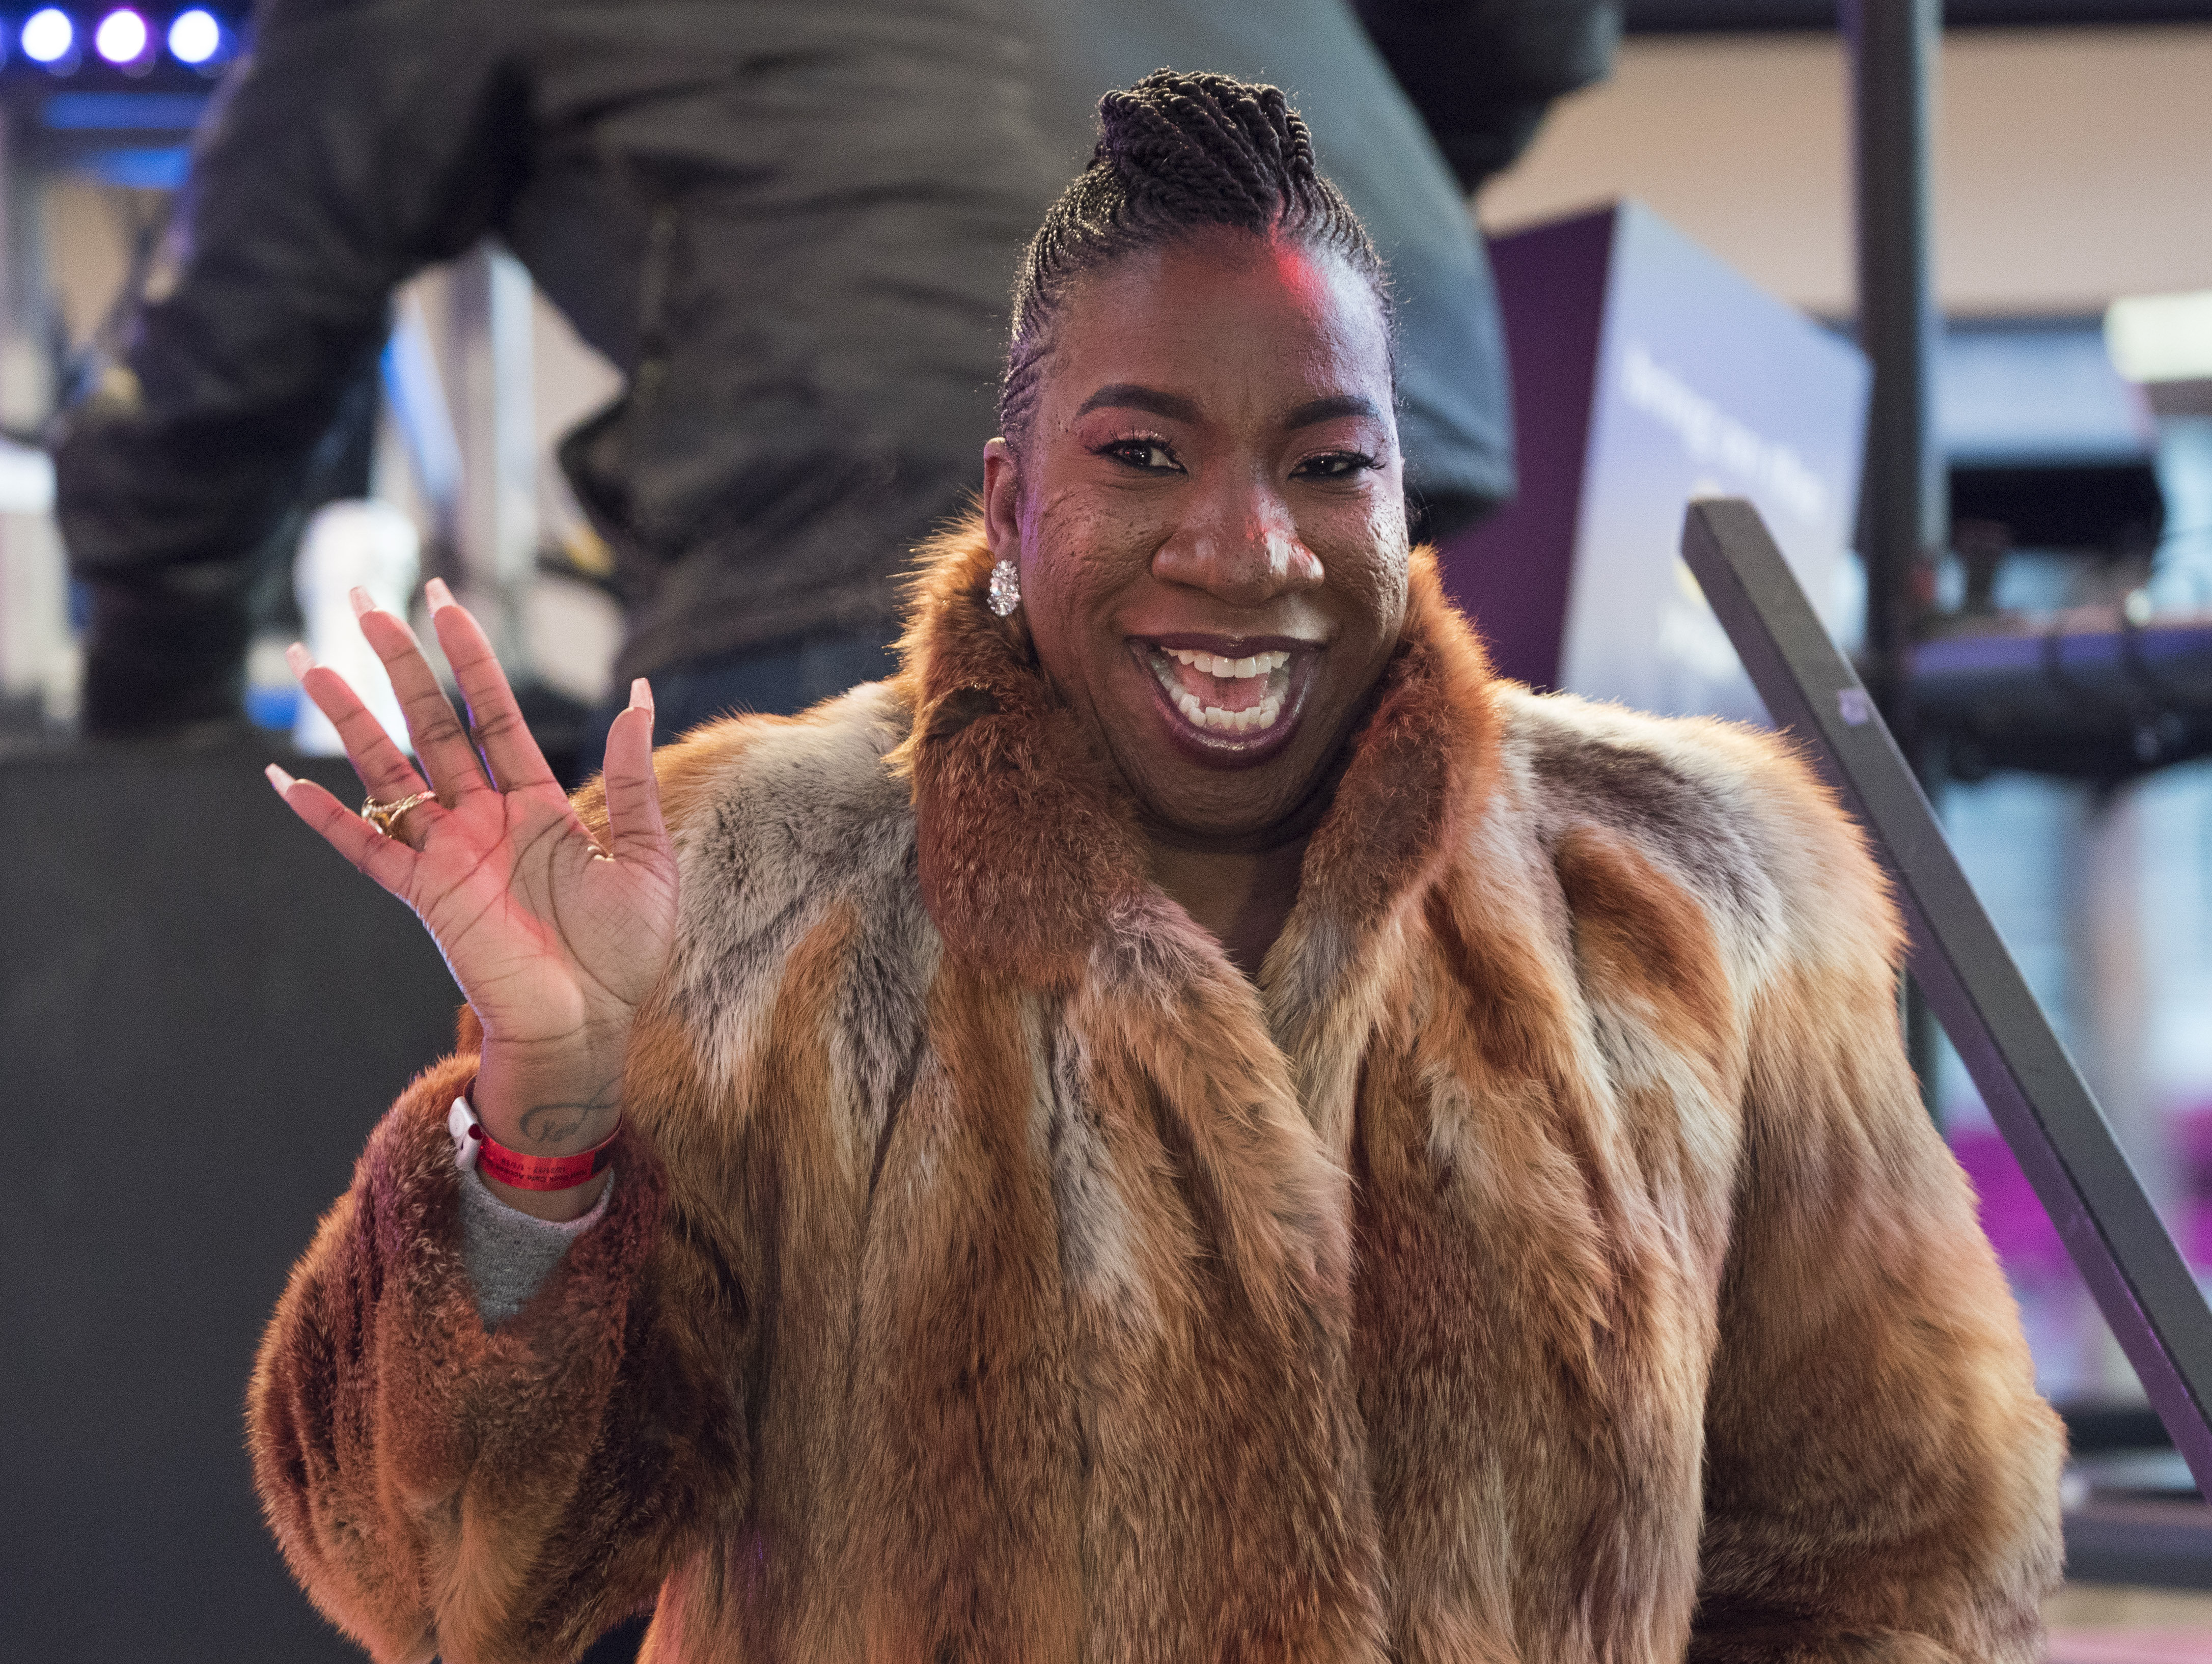 Social activist Tarana Burke, creator of Me Too, takes part in New Year's Eve celebrations in Times Square on December 31, 2017 in New York